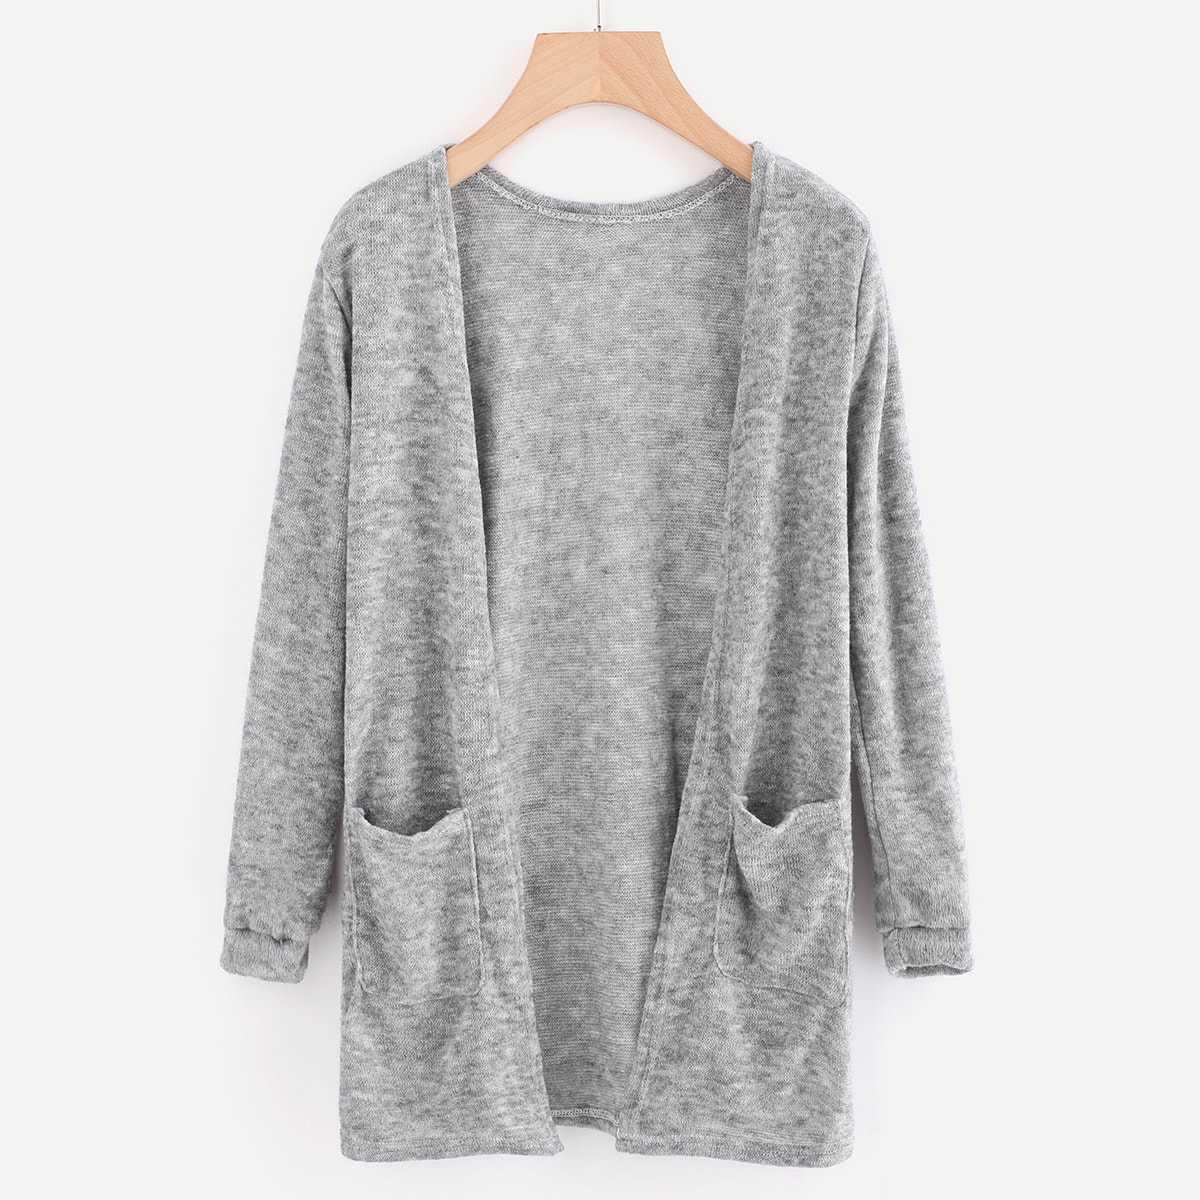 Open Front Cardigan With Pockets in Grey by ROMWE on GOOFASH